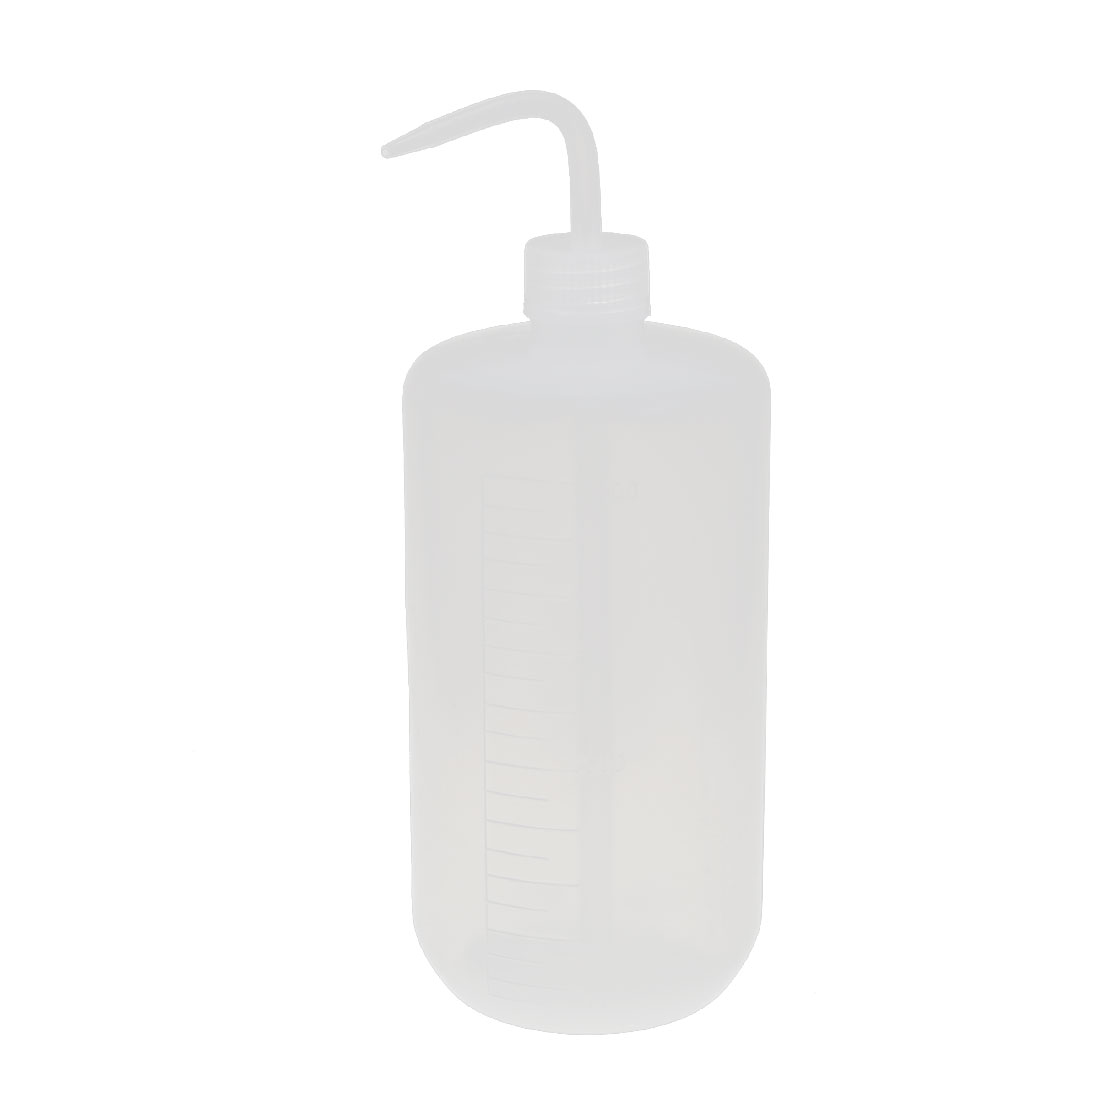 Lab Laboratory Right Angle Bent Tip Plastic Oil Chemical Liquid Water Storage Squeeze Bottle Dispenser 1000mL